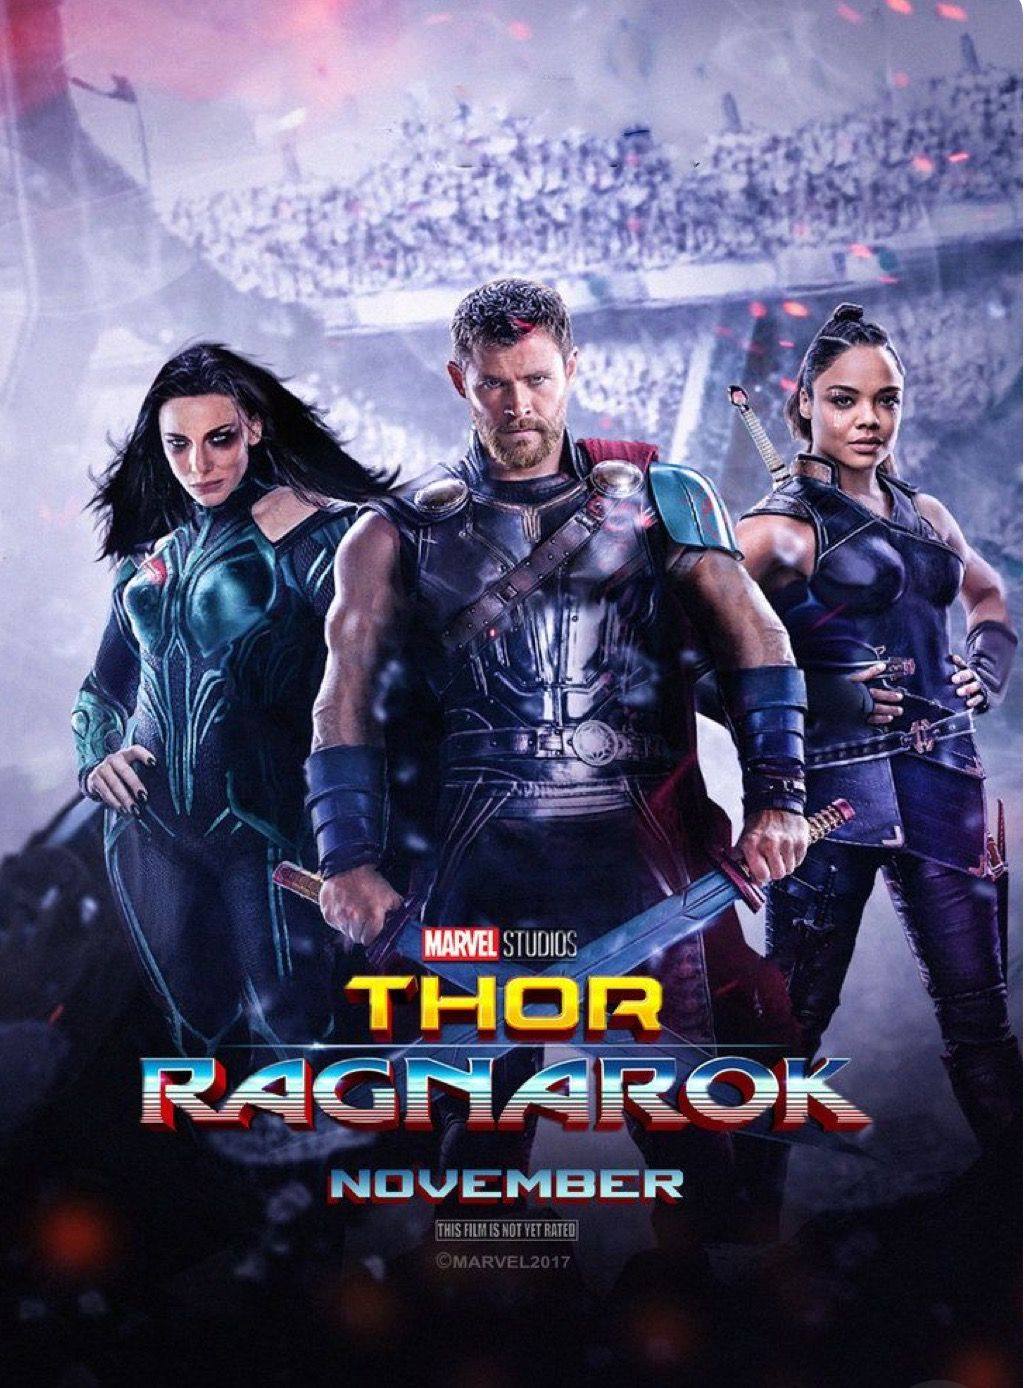 Thor Ragnarok Movie Poster Showing Valkyrie And Hela Check Out 21 Easter Eggs Missed Details